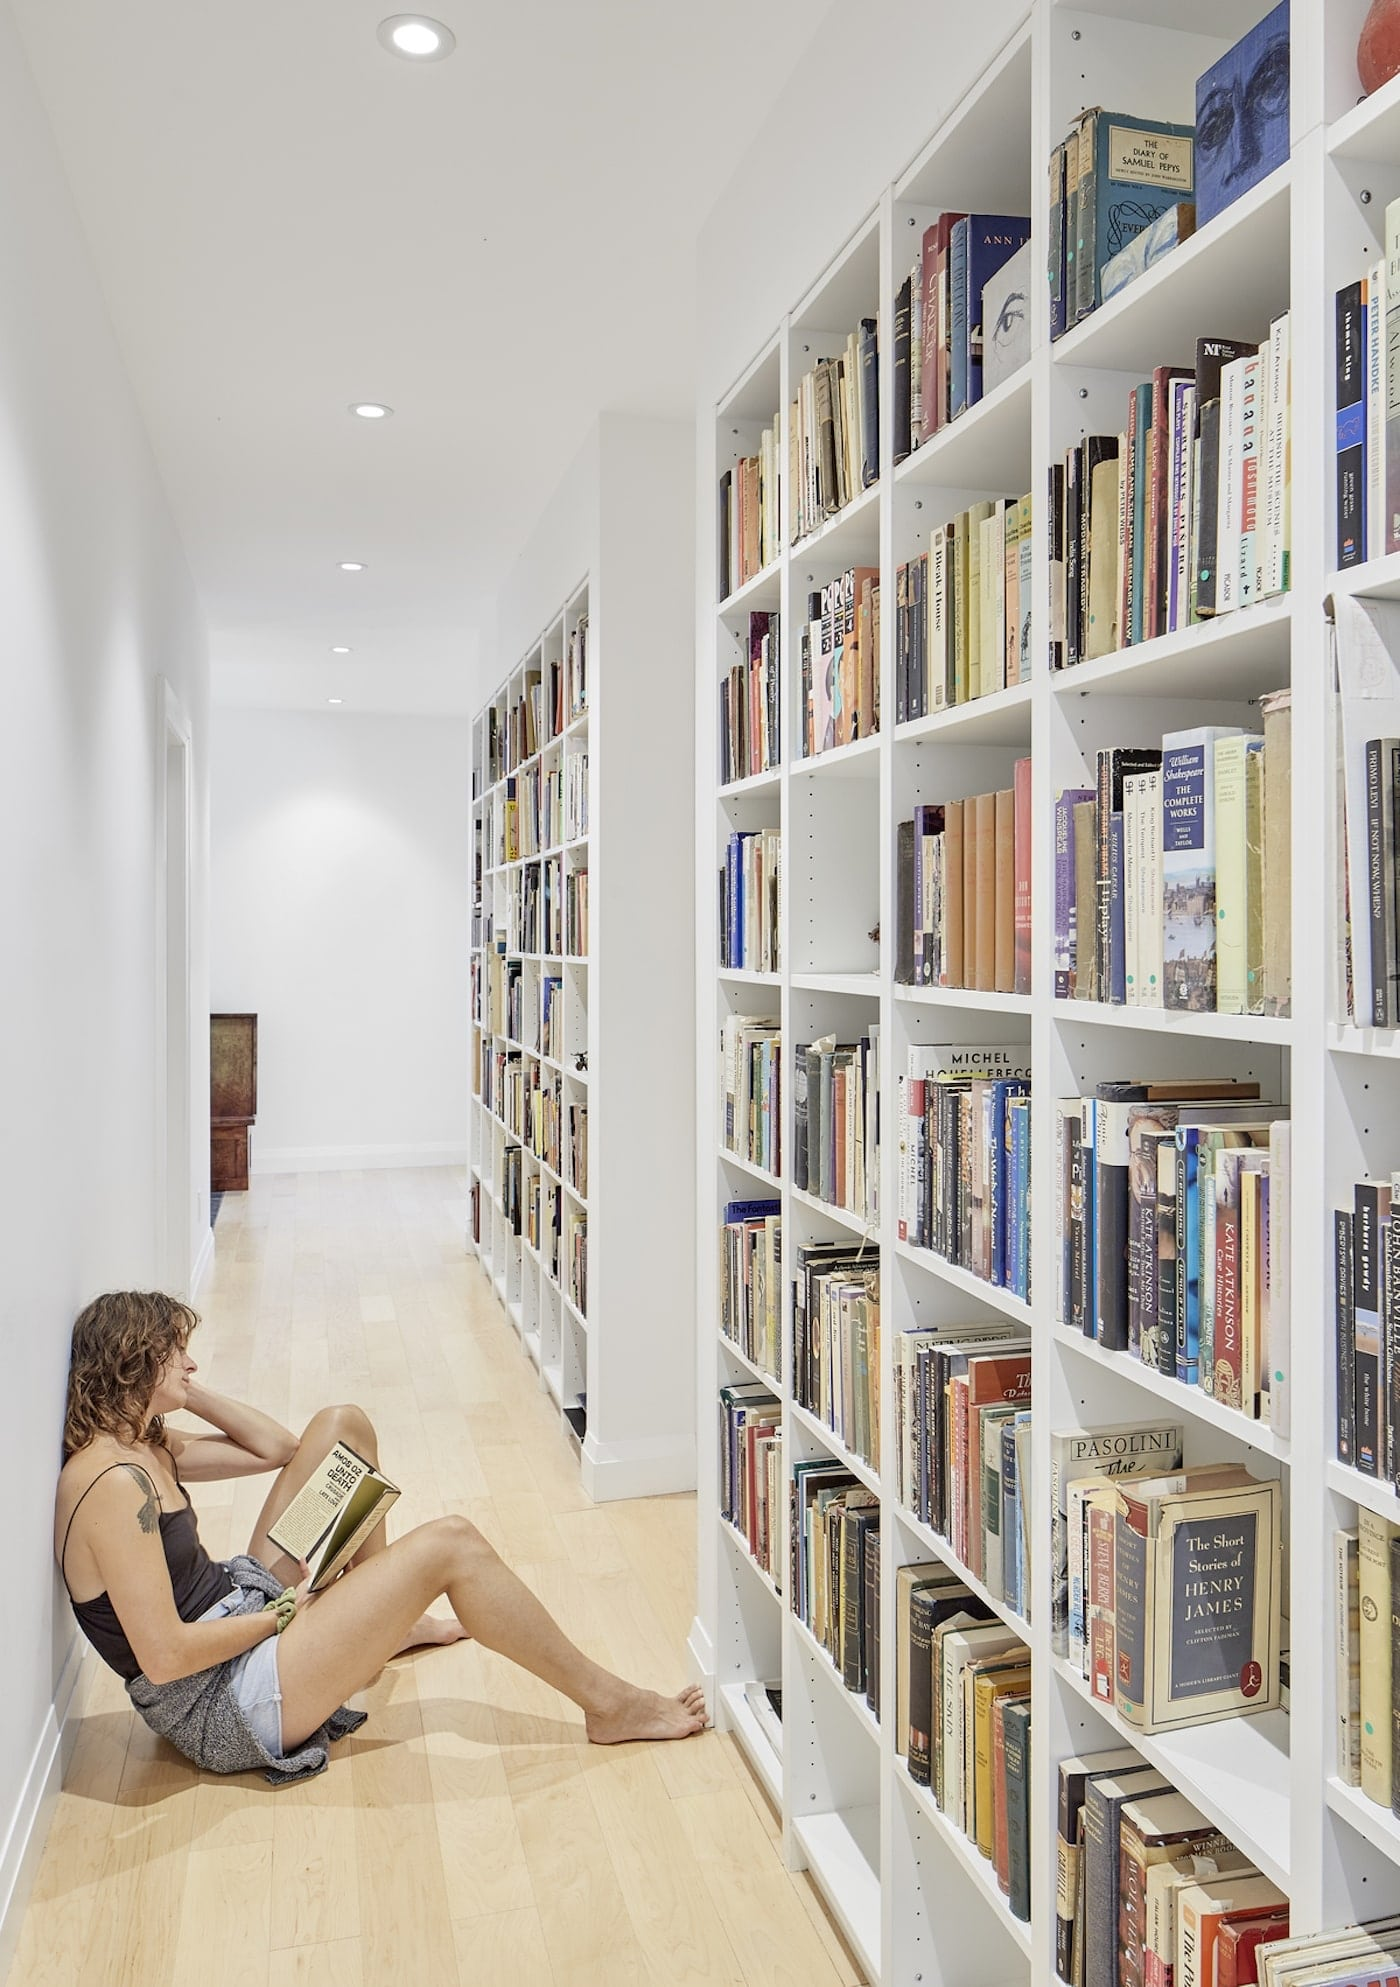 Woman sitting of floor of library in hallway reading a book